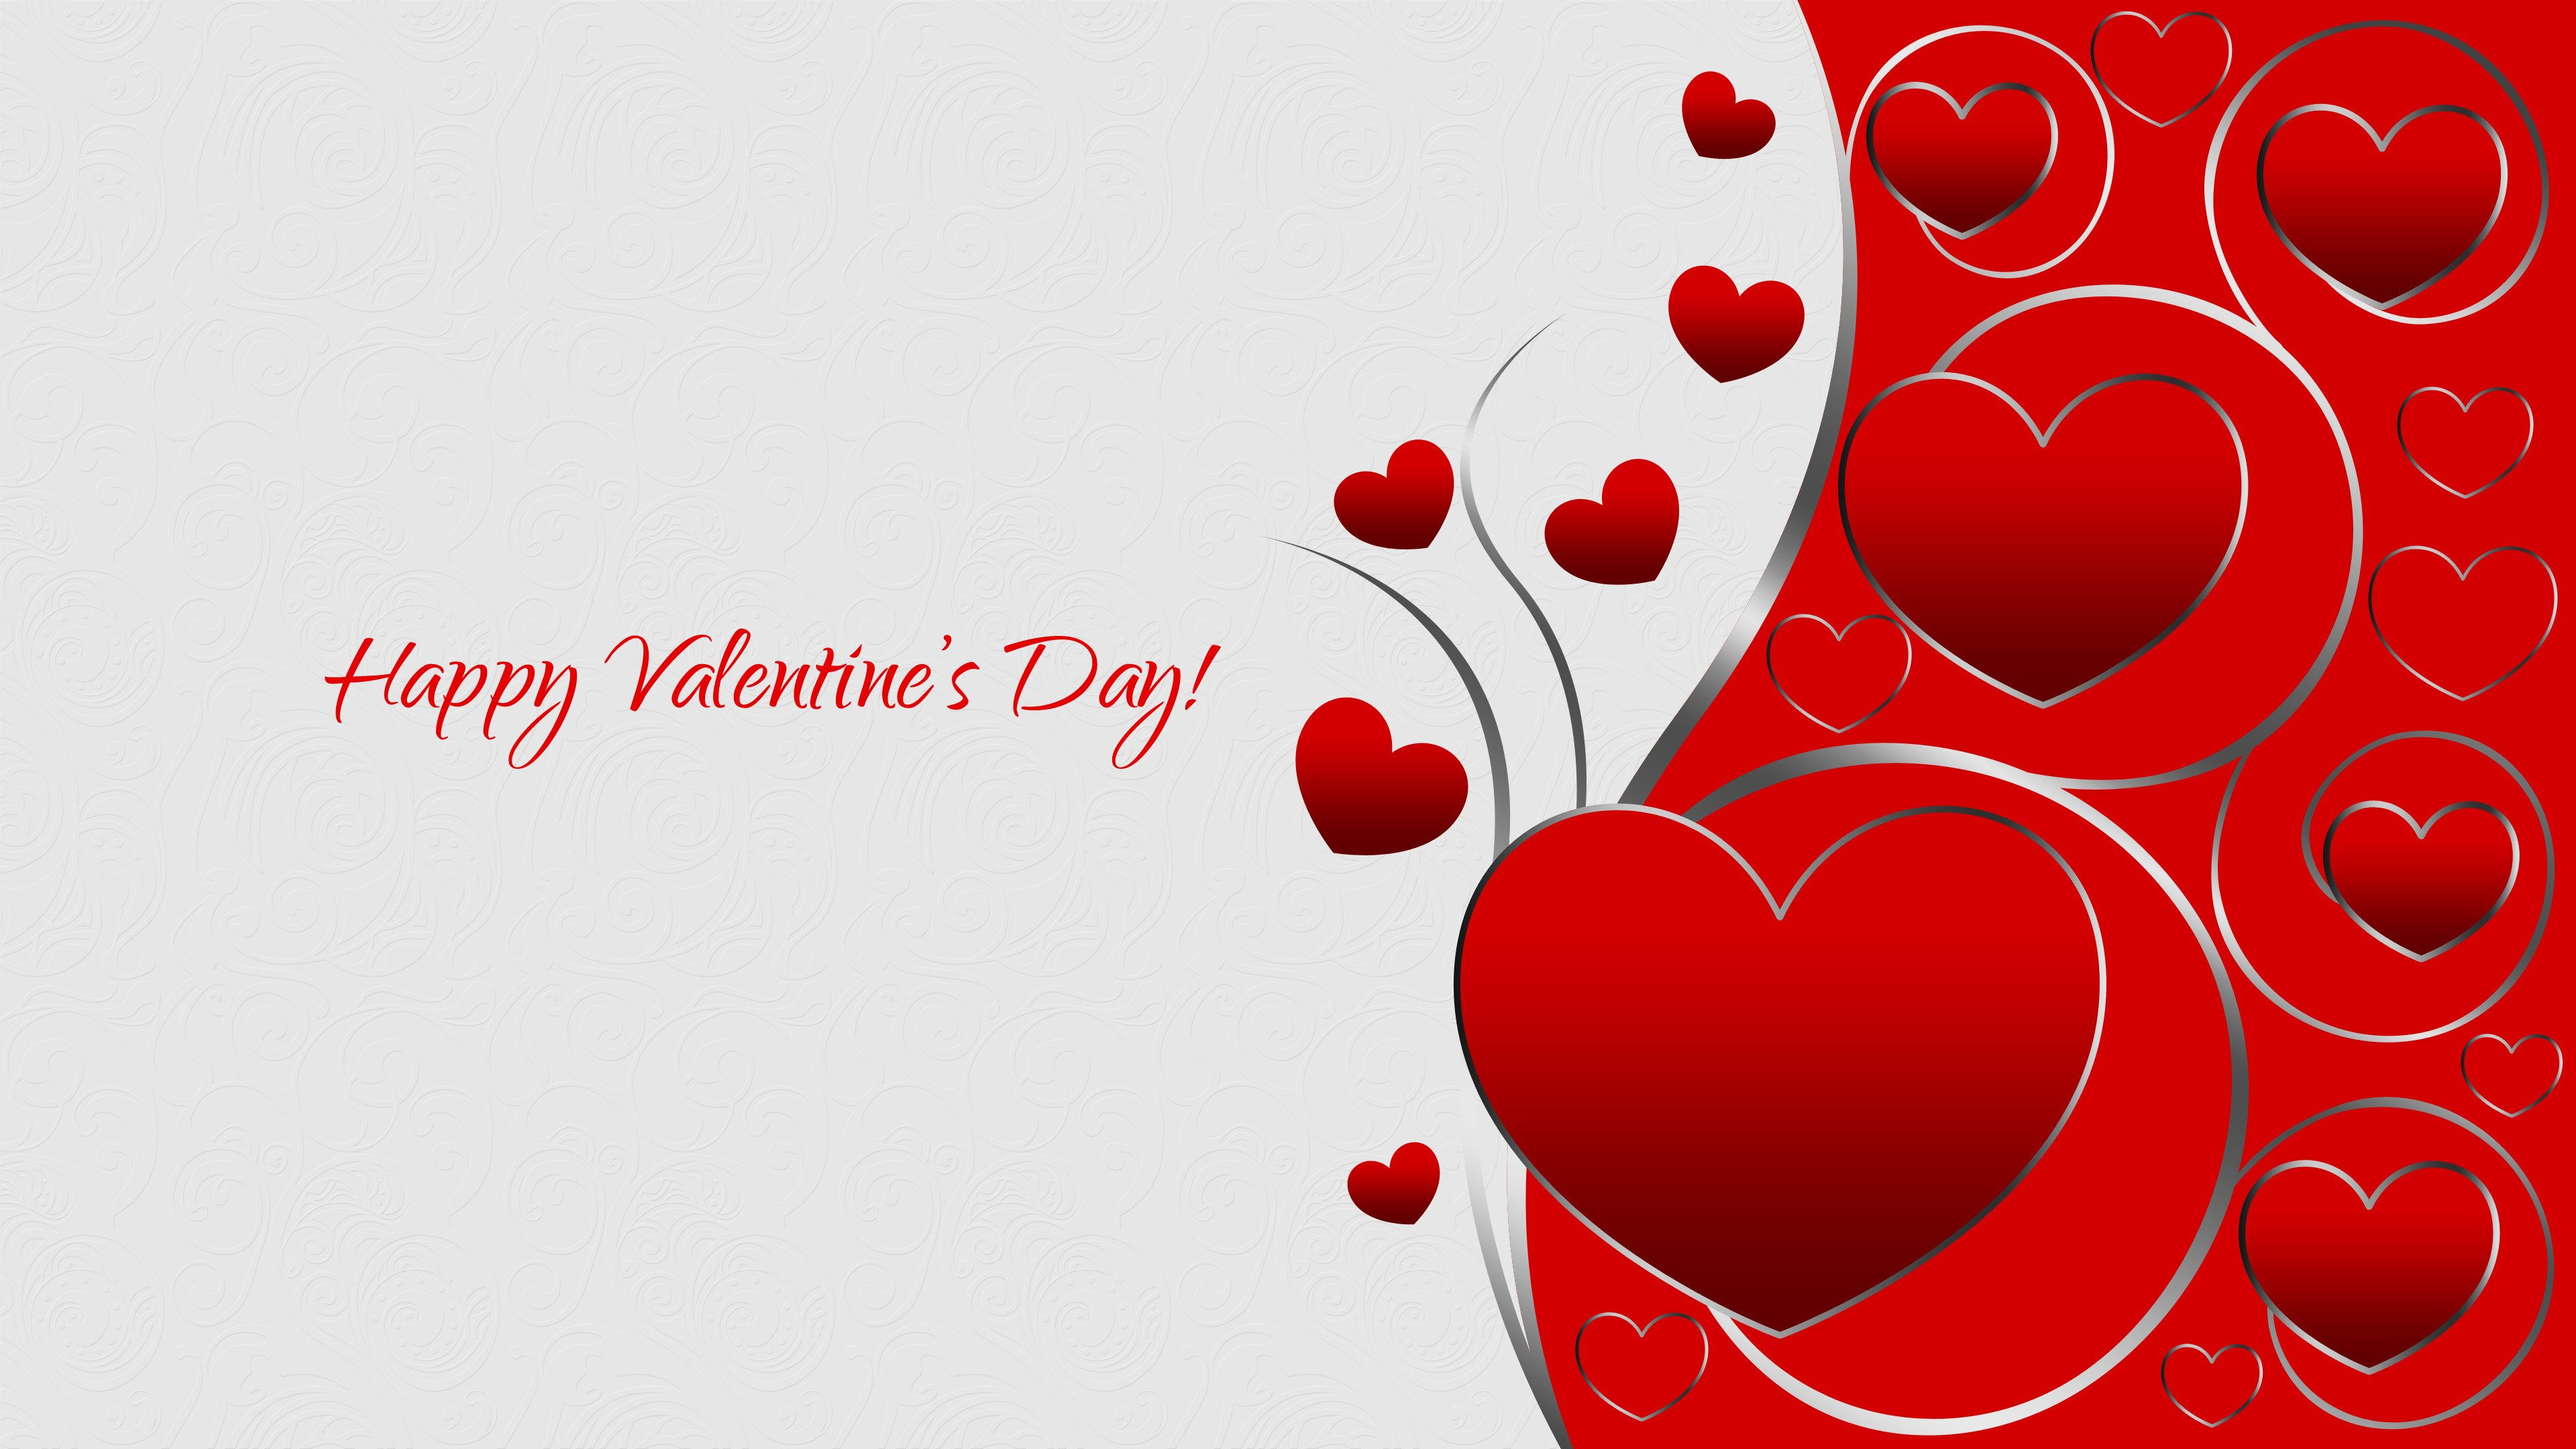 55  Valentines Day backgrounds u00b7u2460 Download free amazing full HD backgrounds for desktop, mobile